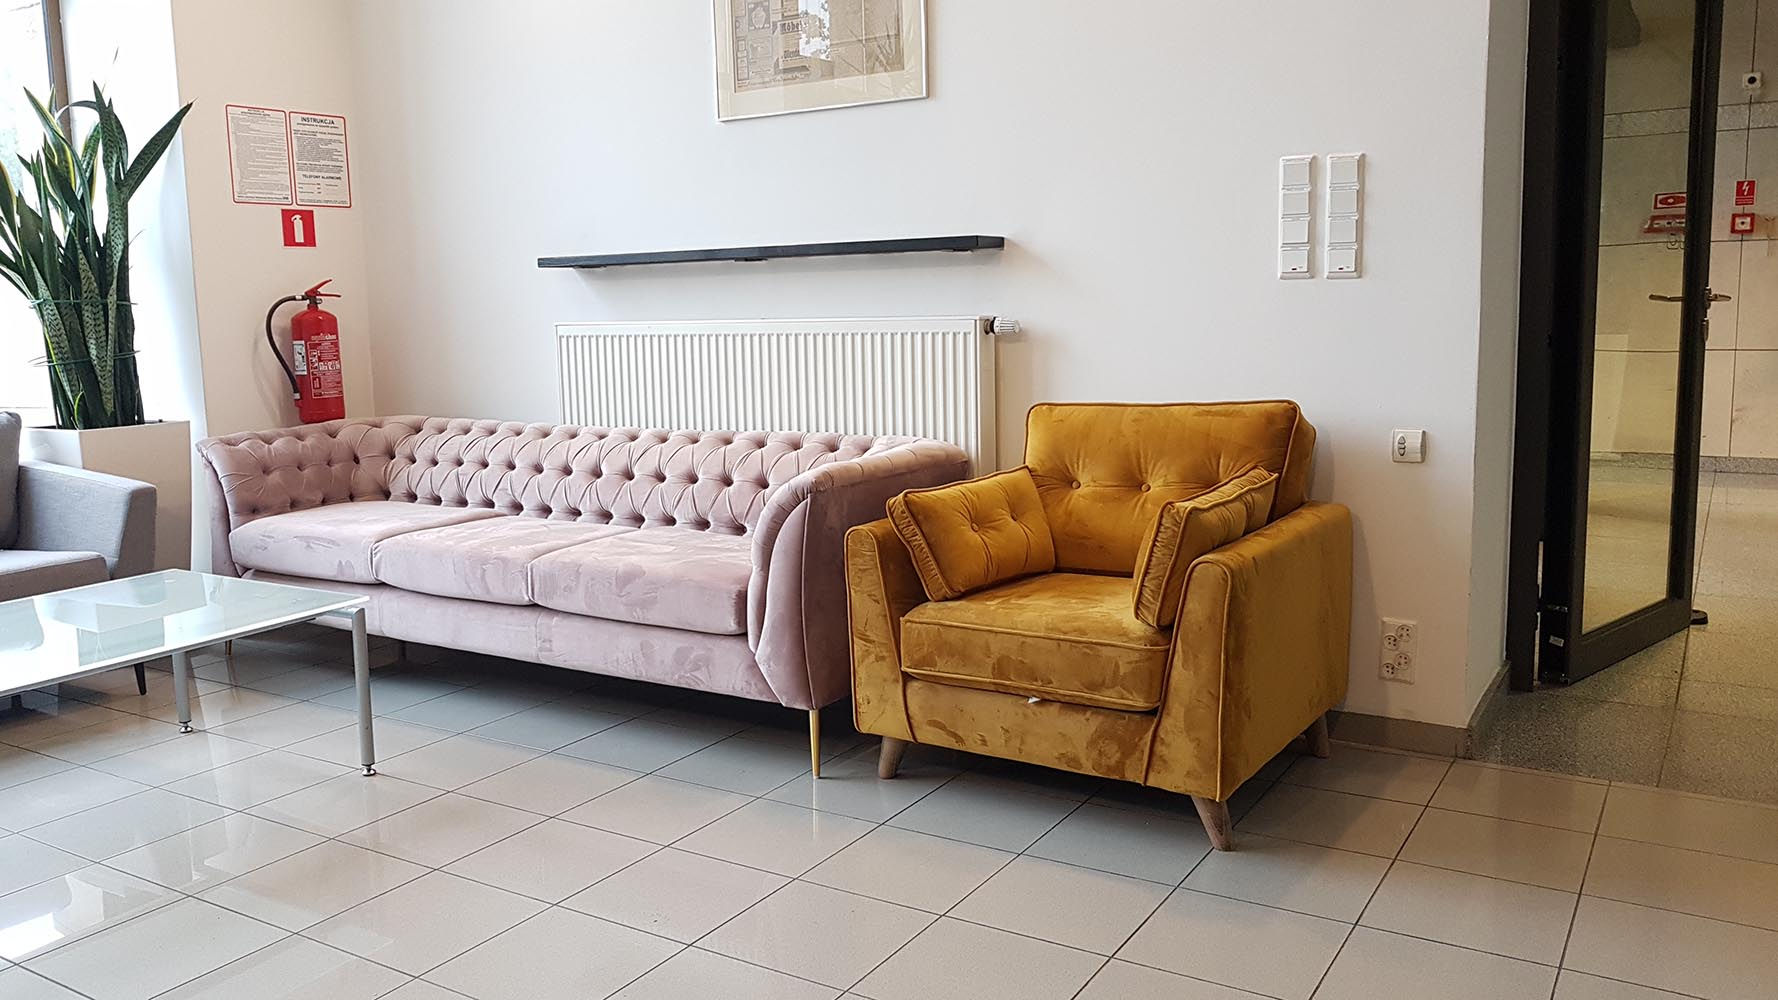 Chesterfield Modern Sofa and Magnus armchair